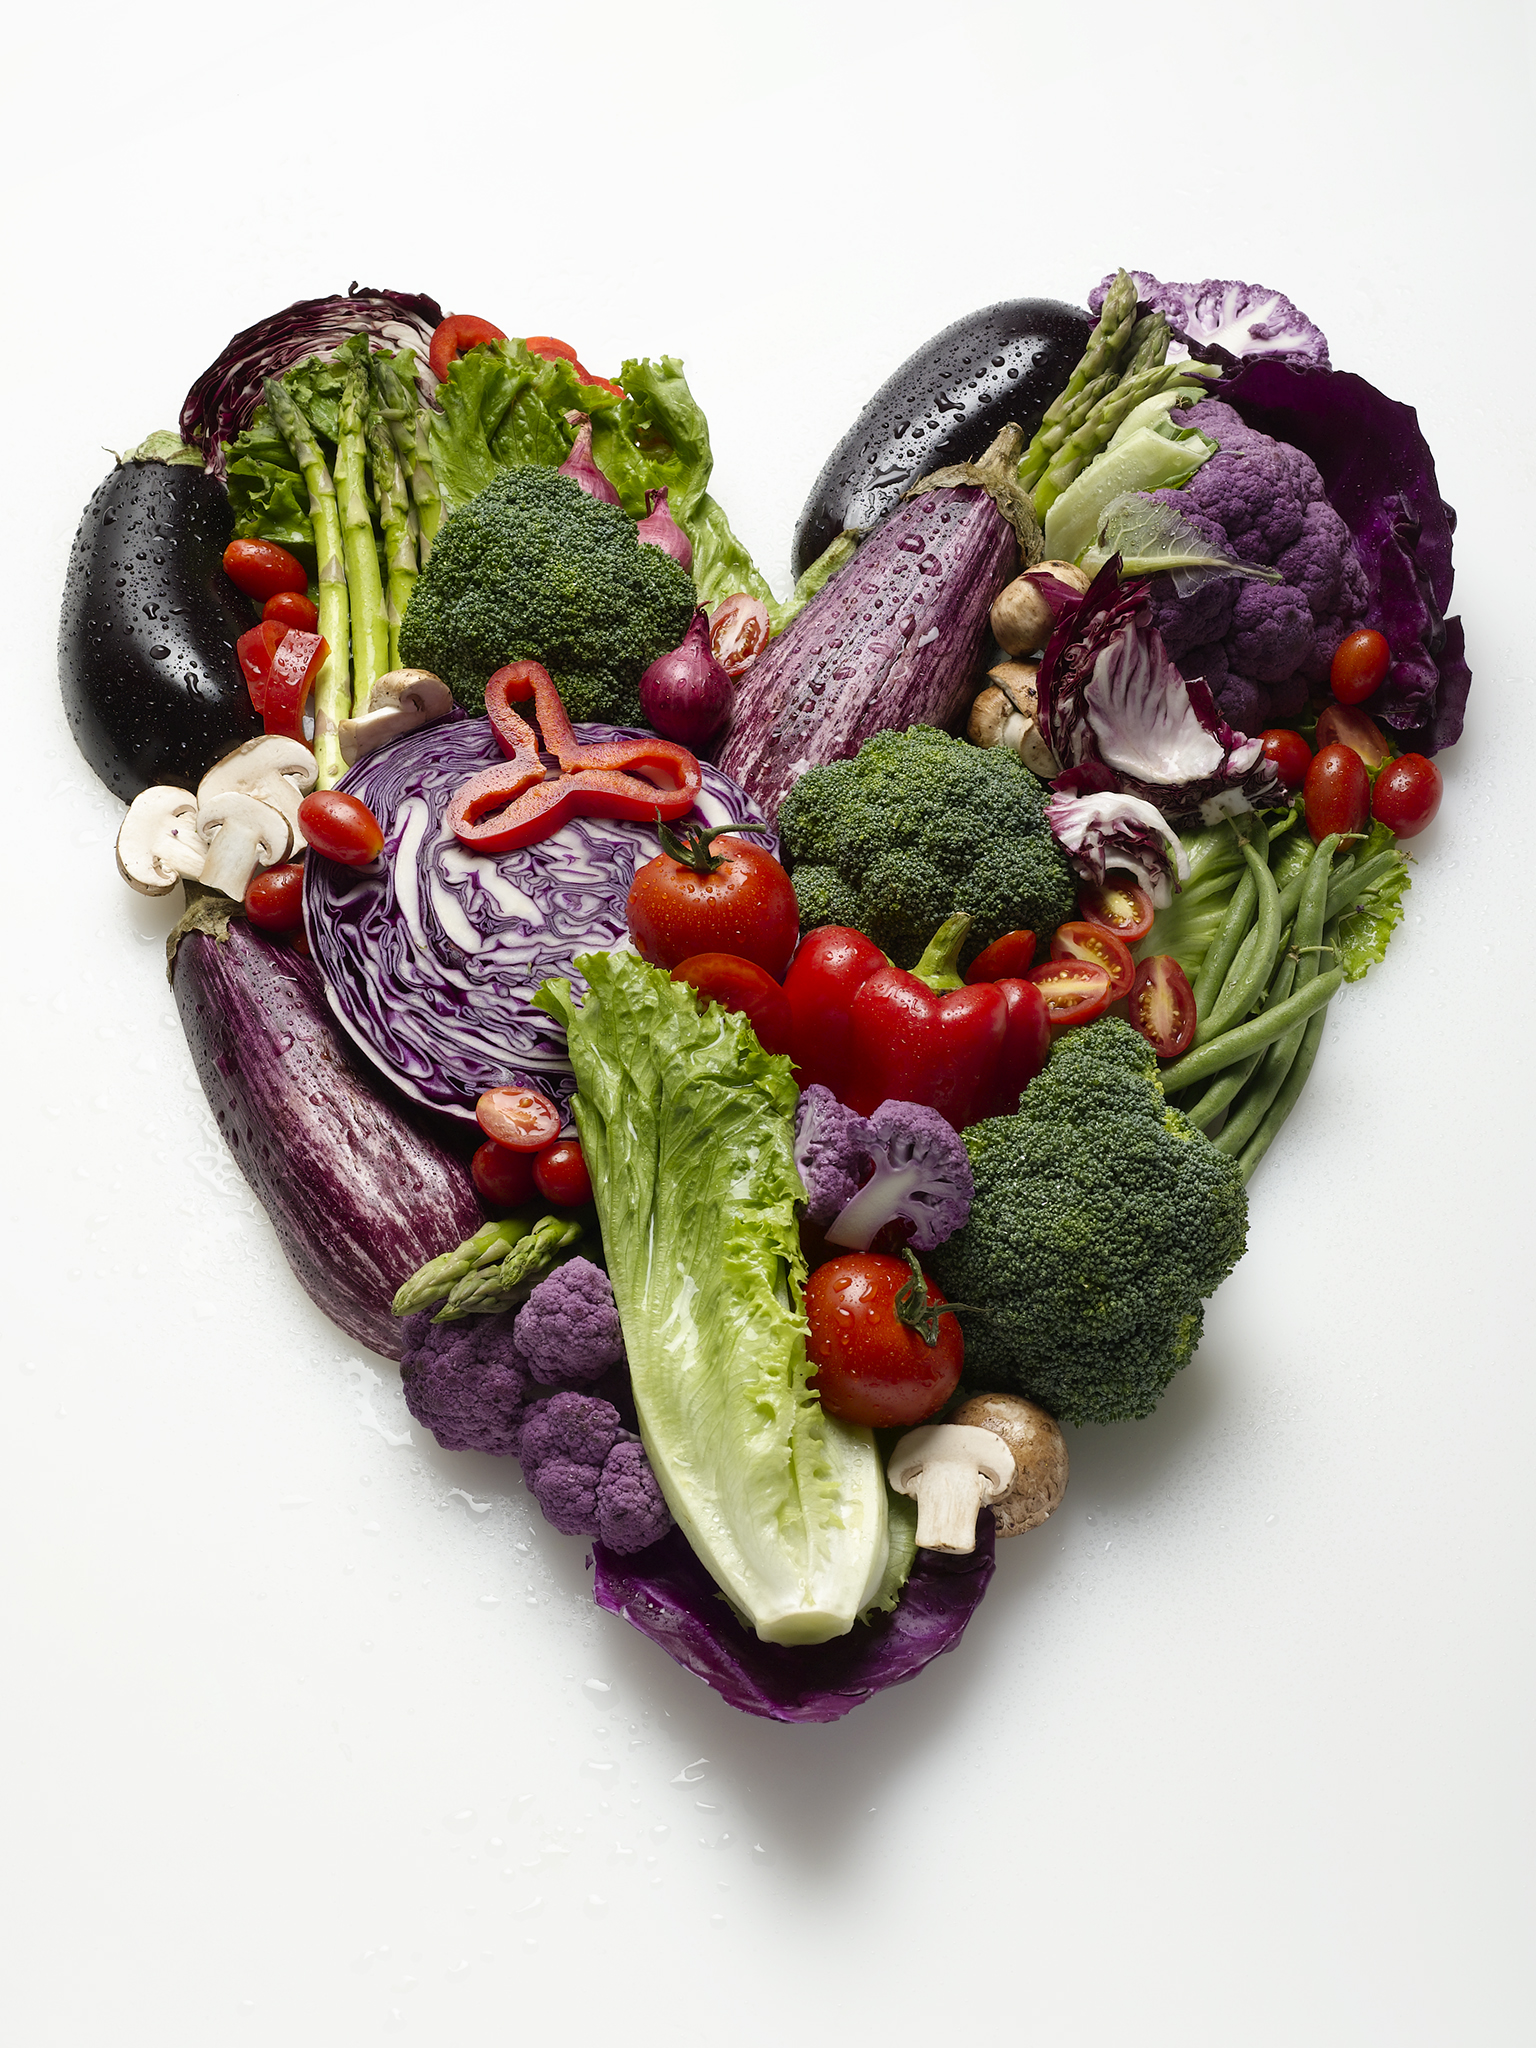 008_2 vegetable heart.jpg